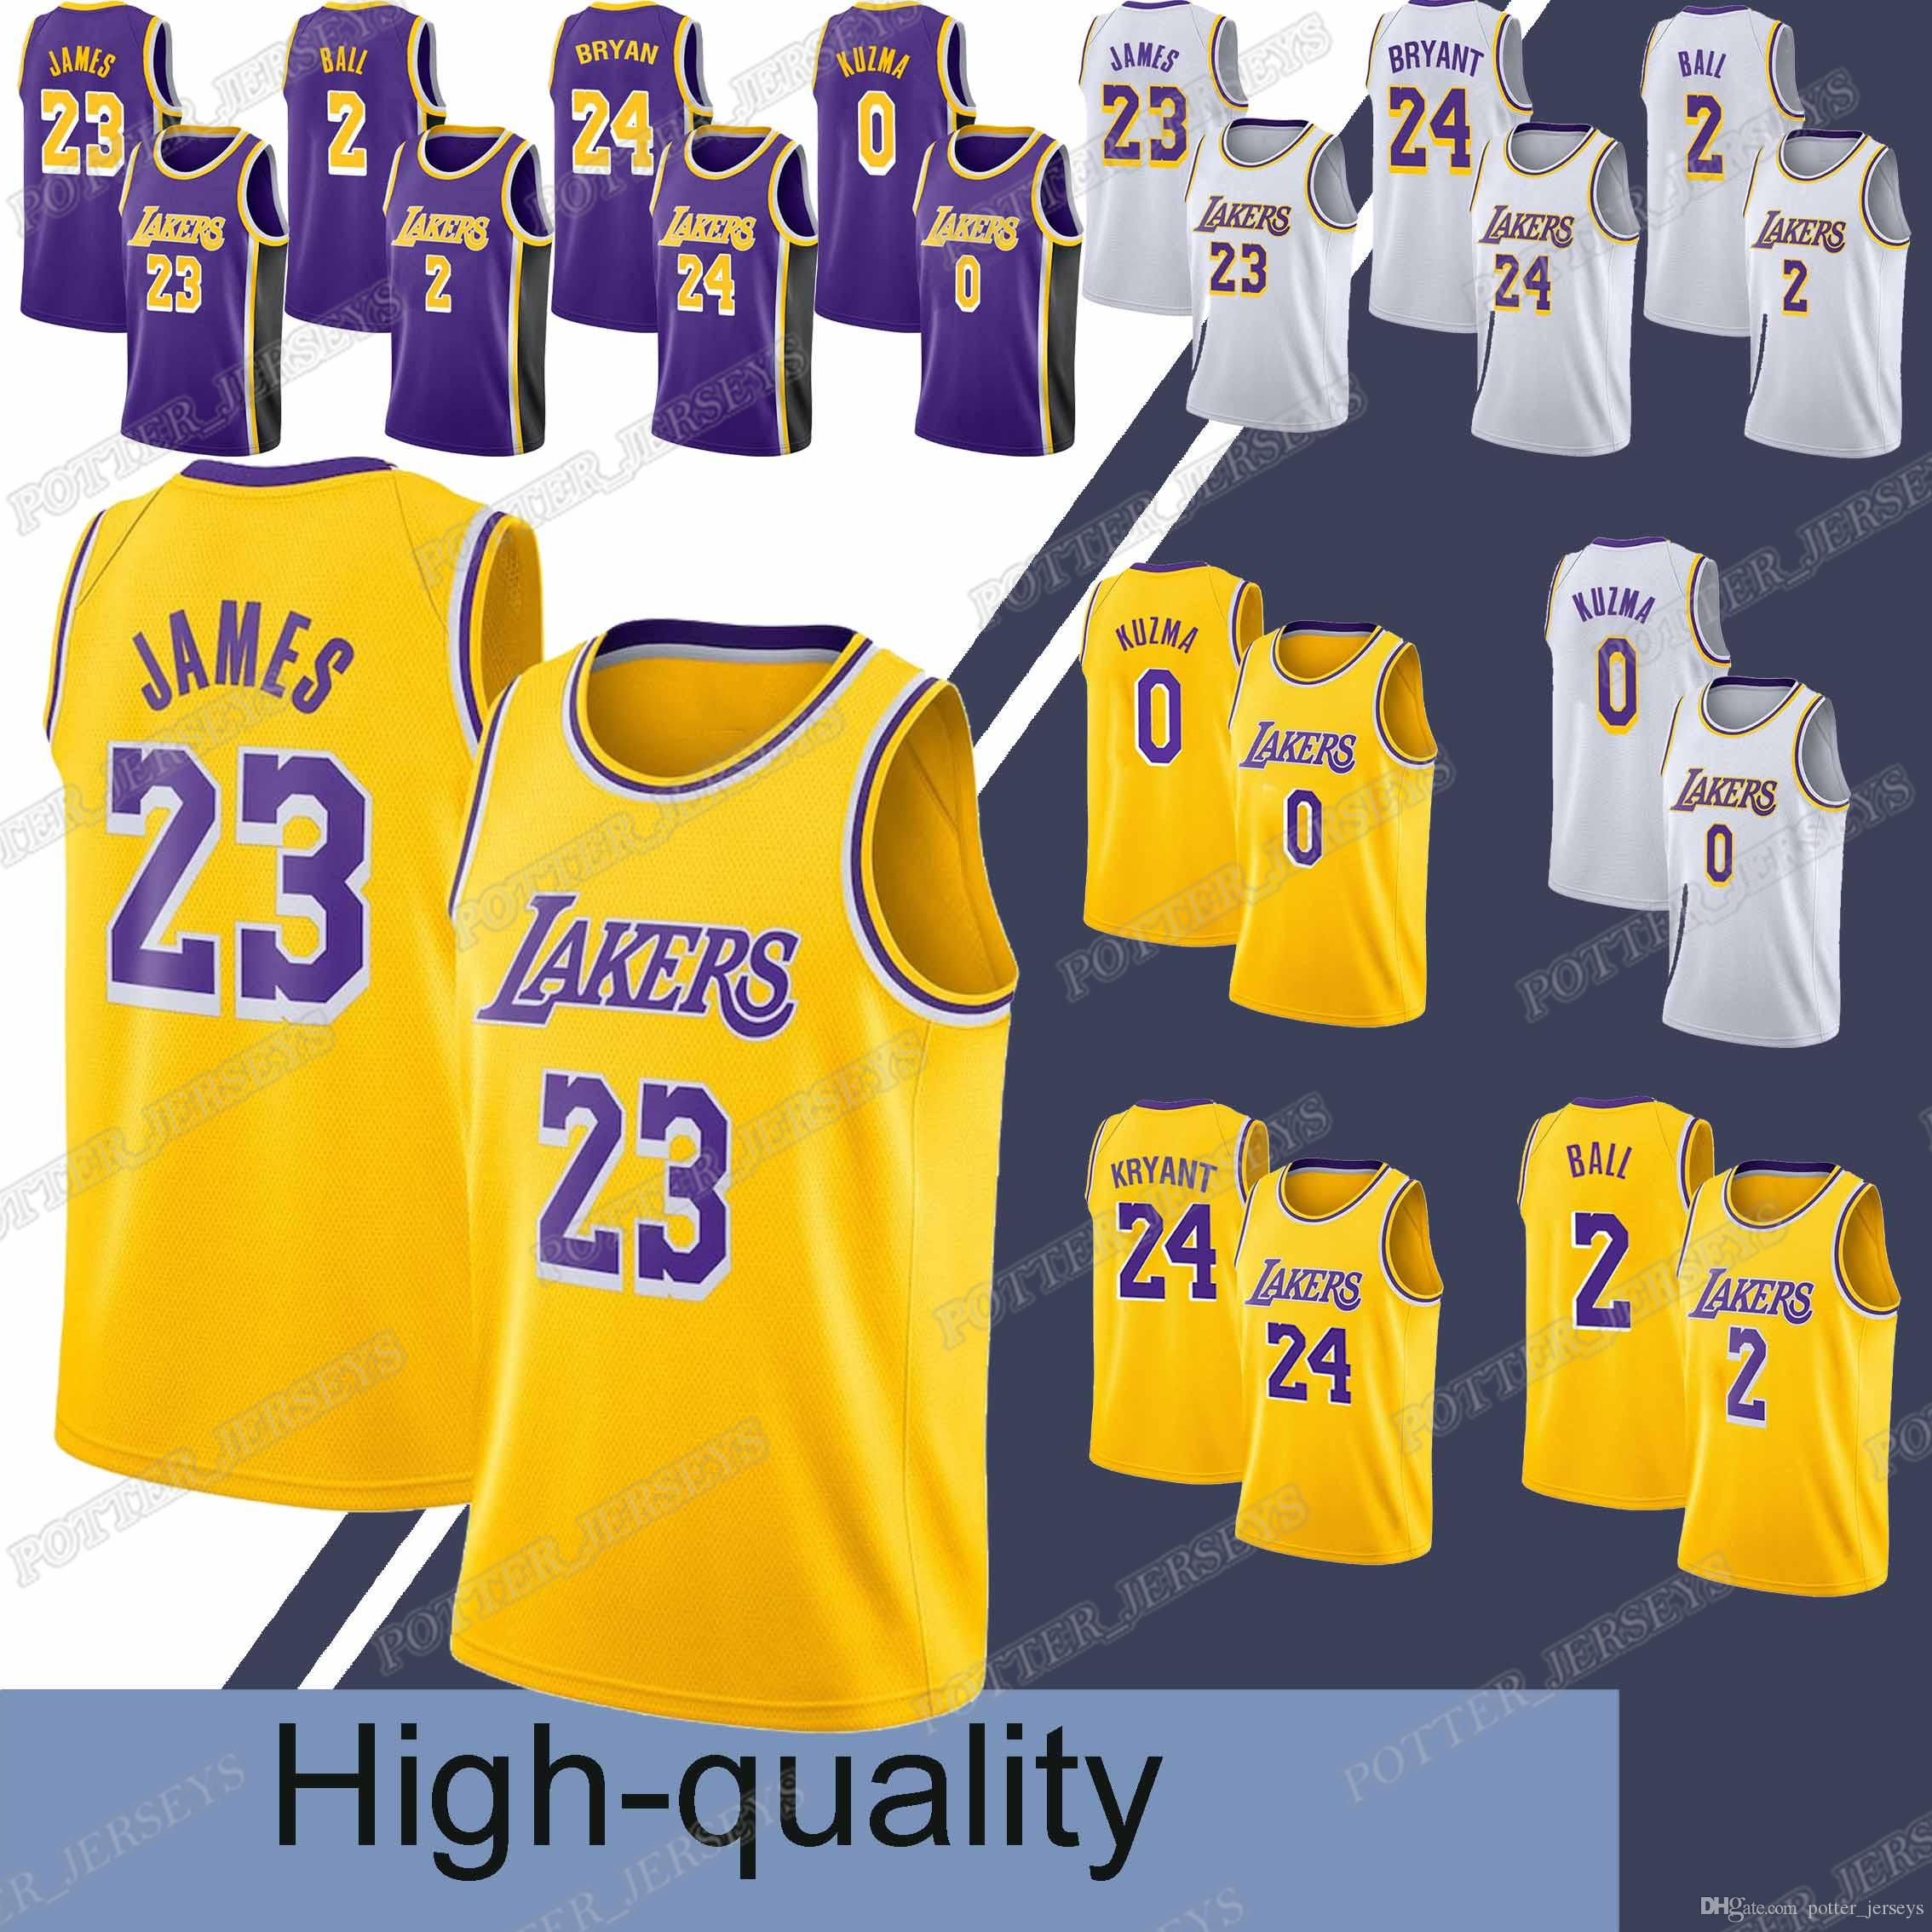 best service a8f33 3c7ed 23 LeBron James jersey Laker jerseys 24 Bryant 0 Kuzma 2 Ball Hot sale 2019  men basketball jerseys